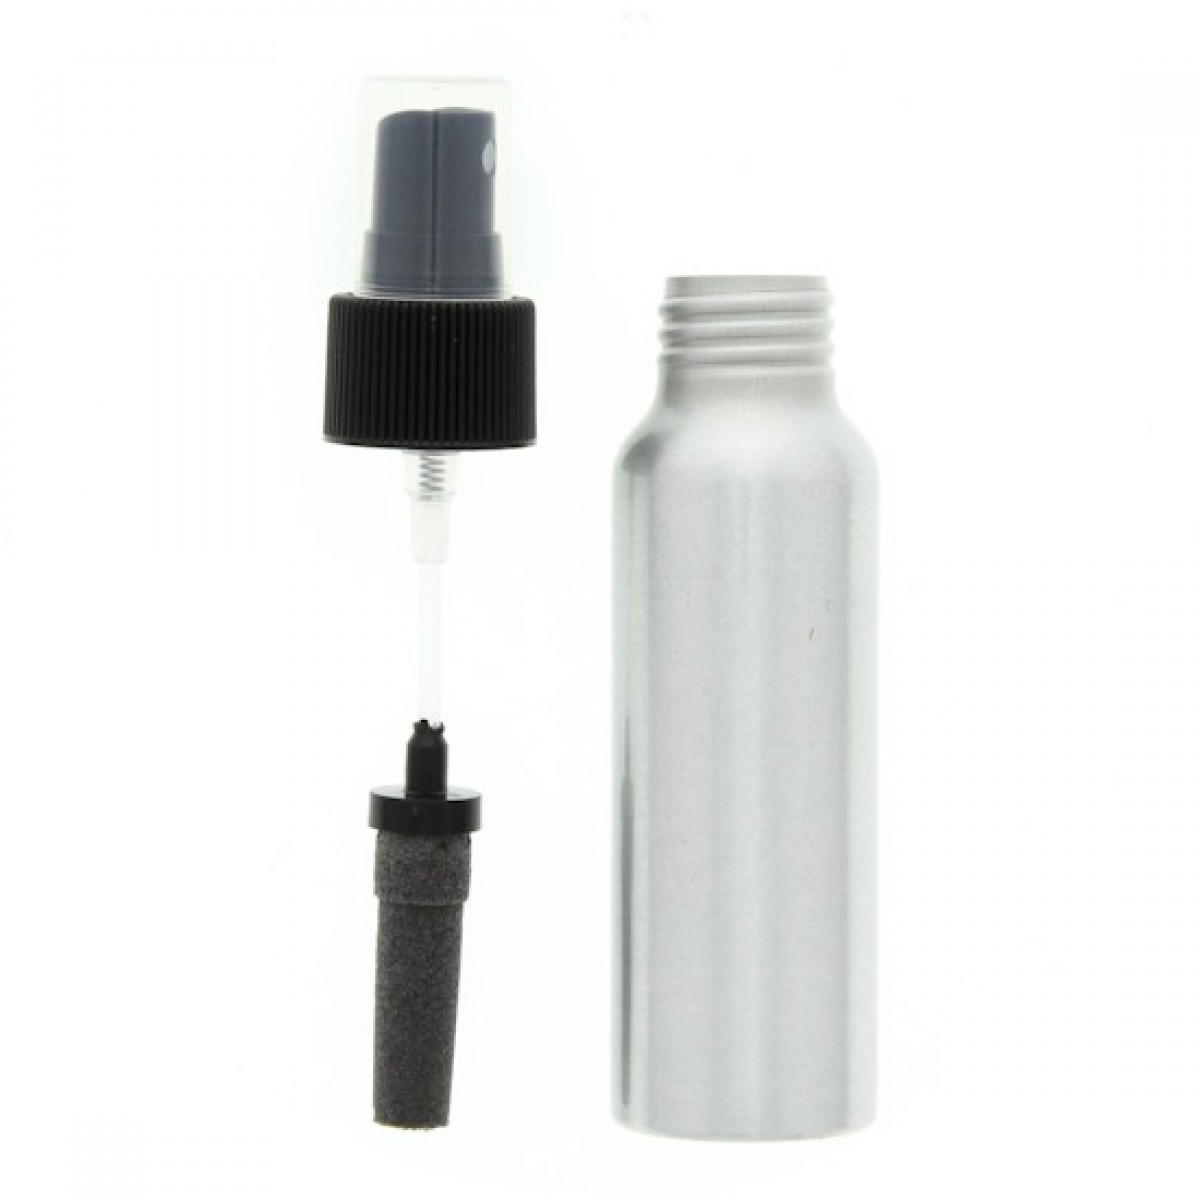 Filters For Misting Systems : Seychelle am aqua mist personal water misting system